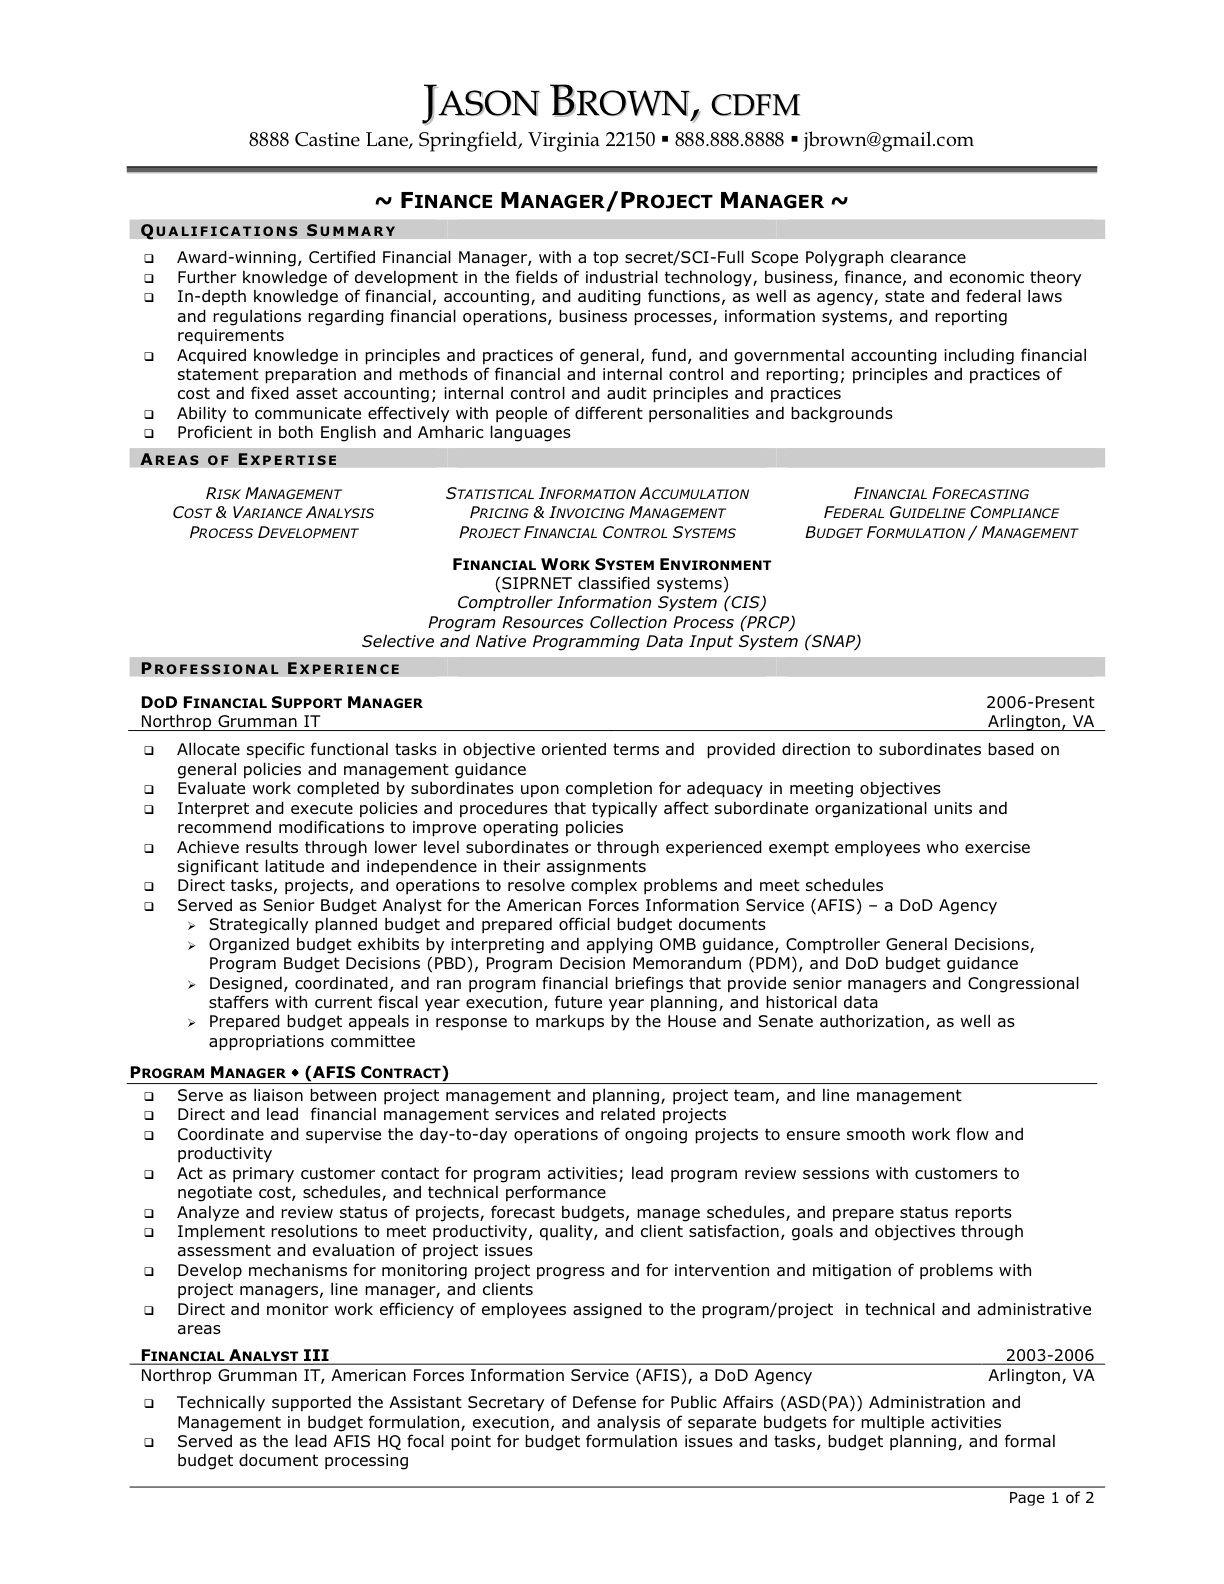 Resume Sample For Project Managers Business Project Manager Resume